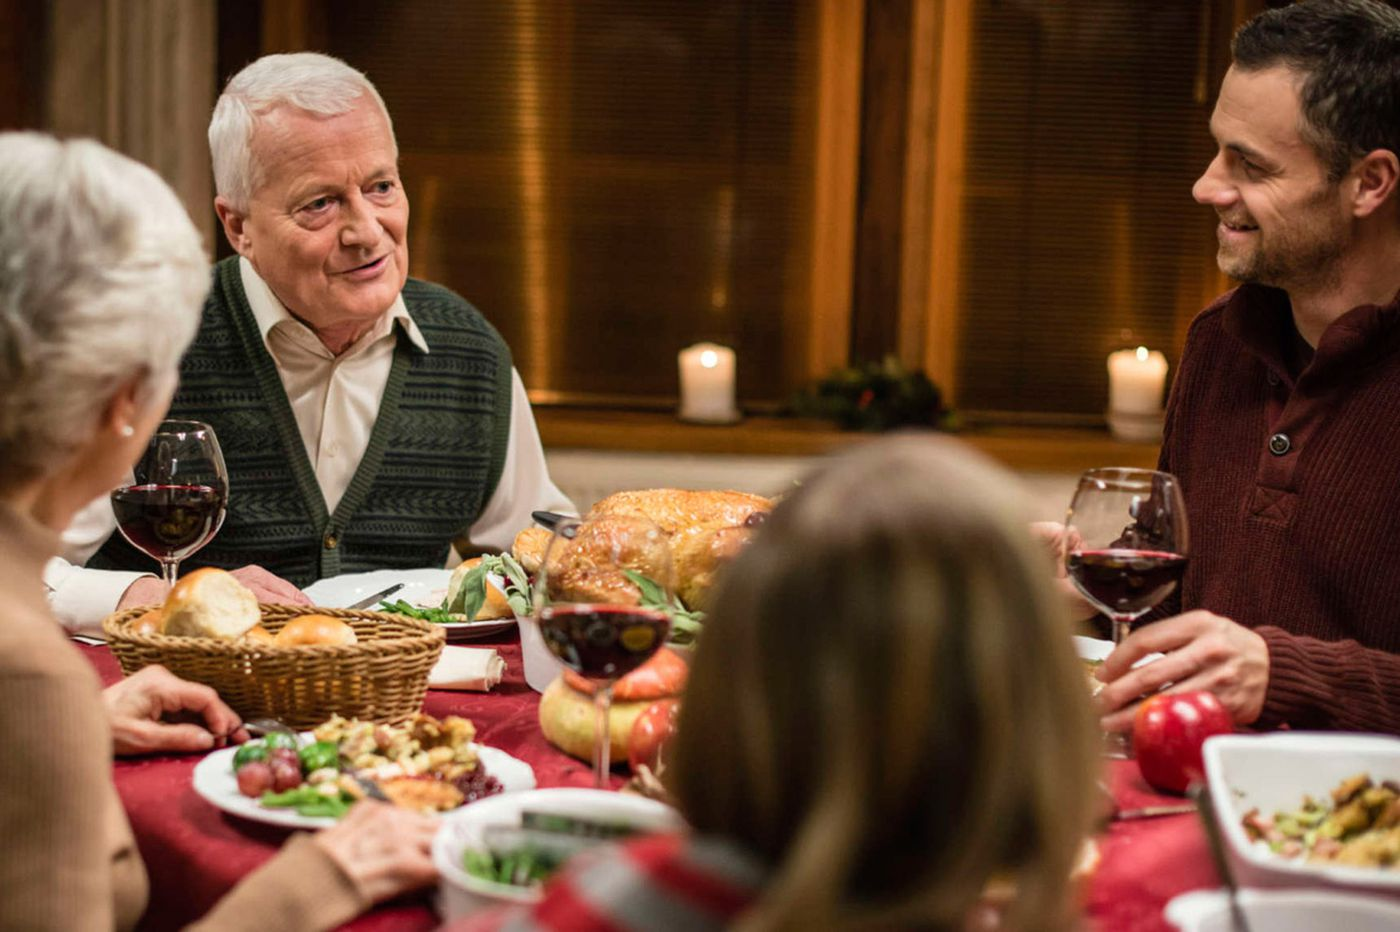 Holiday visit offers good opportunity to assess health needs of aging relatives